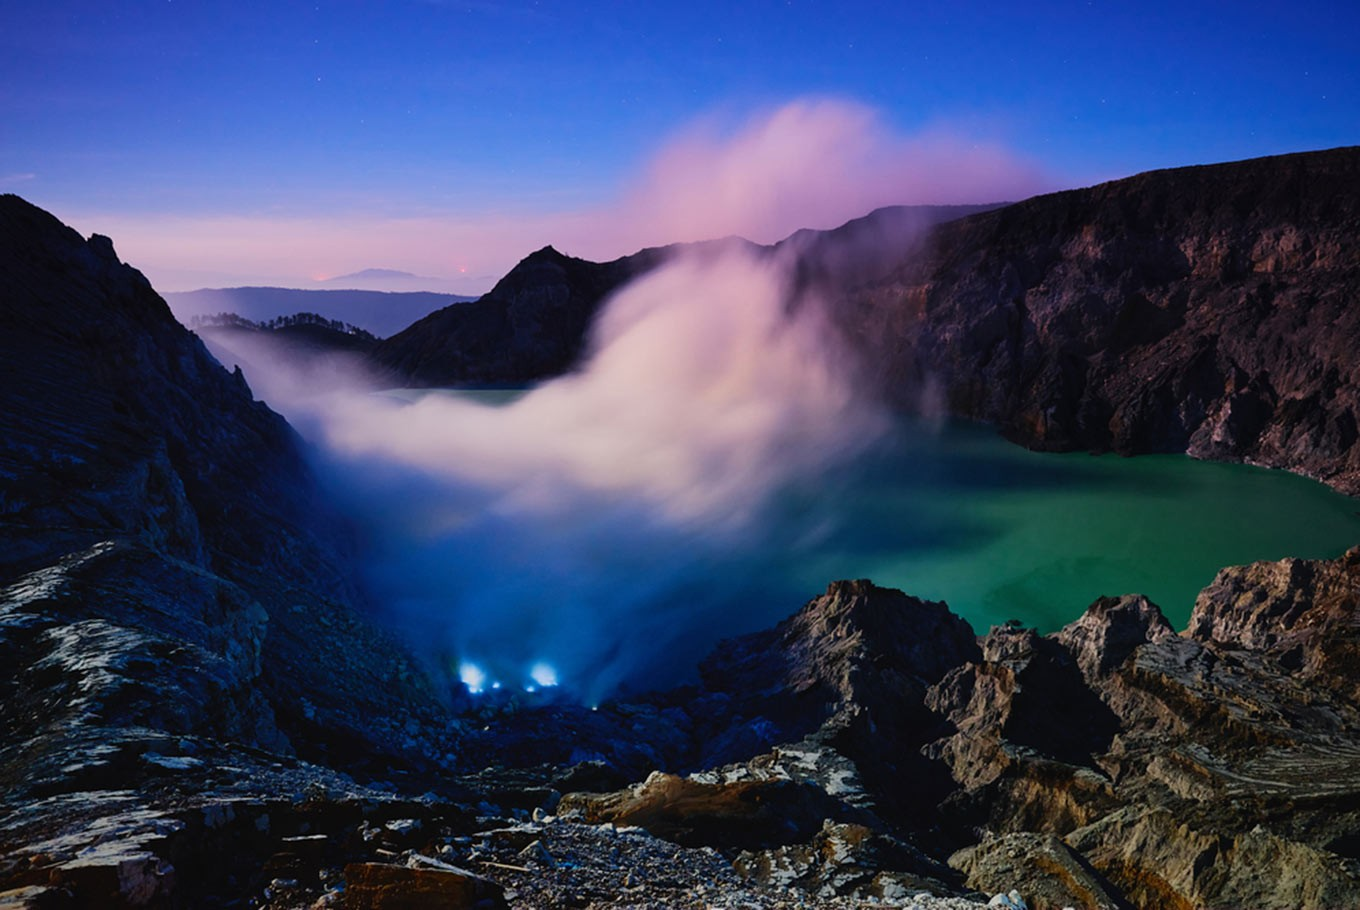 East Java nature parks switch to online ticketing, starting with Mount Ijen